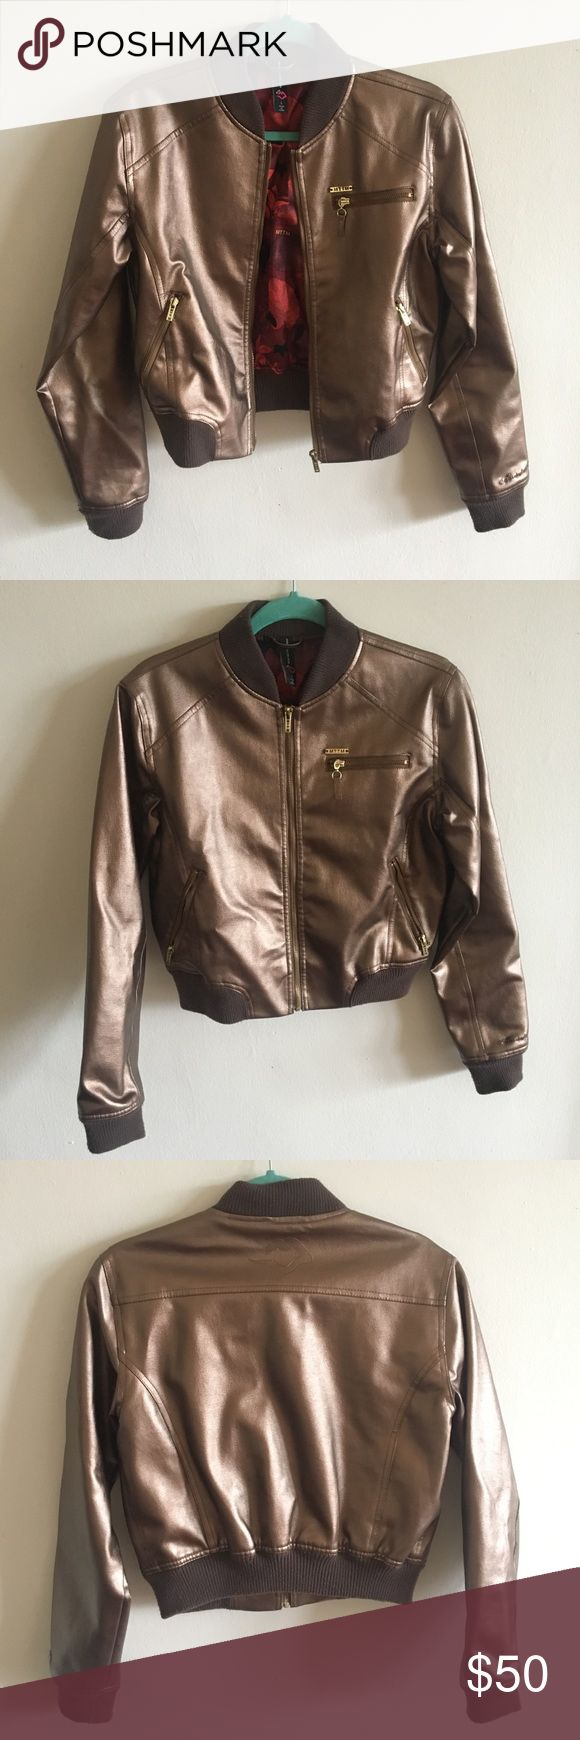 Married to the Mob-MTTM Gold/Bronze Leather Jacket Married to the Mob (MTTM) Bronze/Gold Leather Jacket, size large, fits like a medium, like new condition. Unique and gorgeous, but I never wear it! Married to the Mob Jackets & Coats